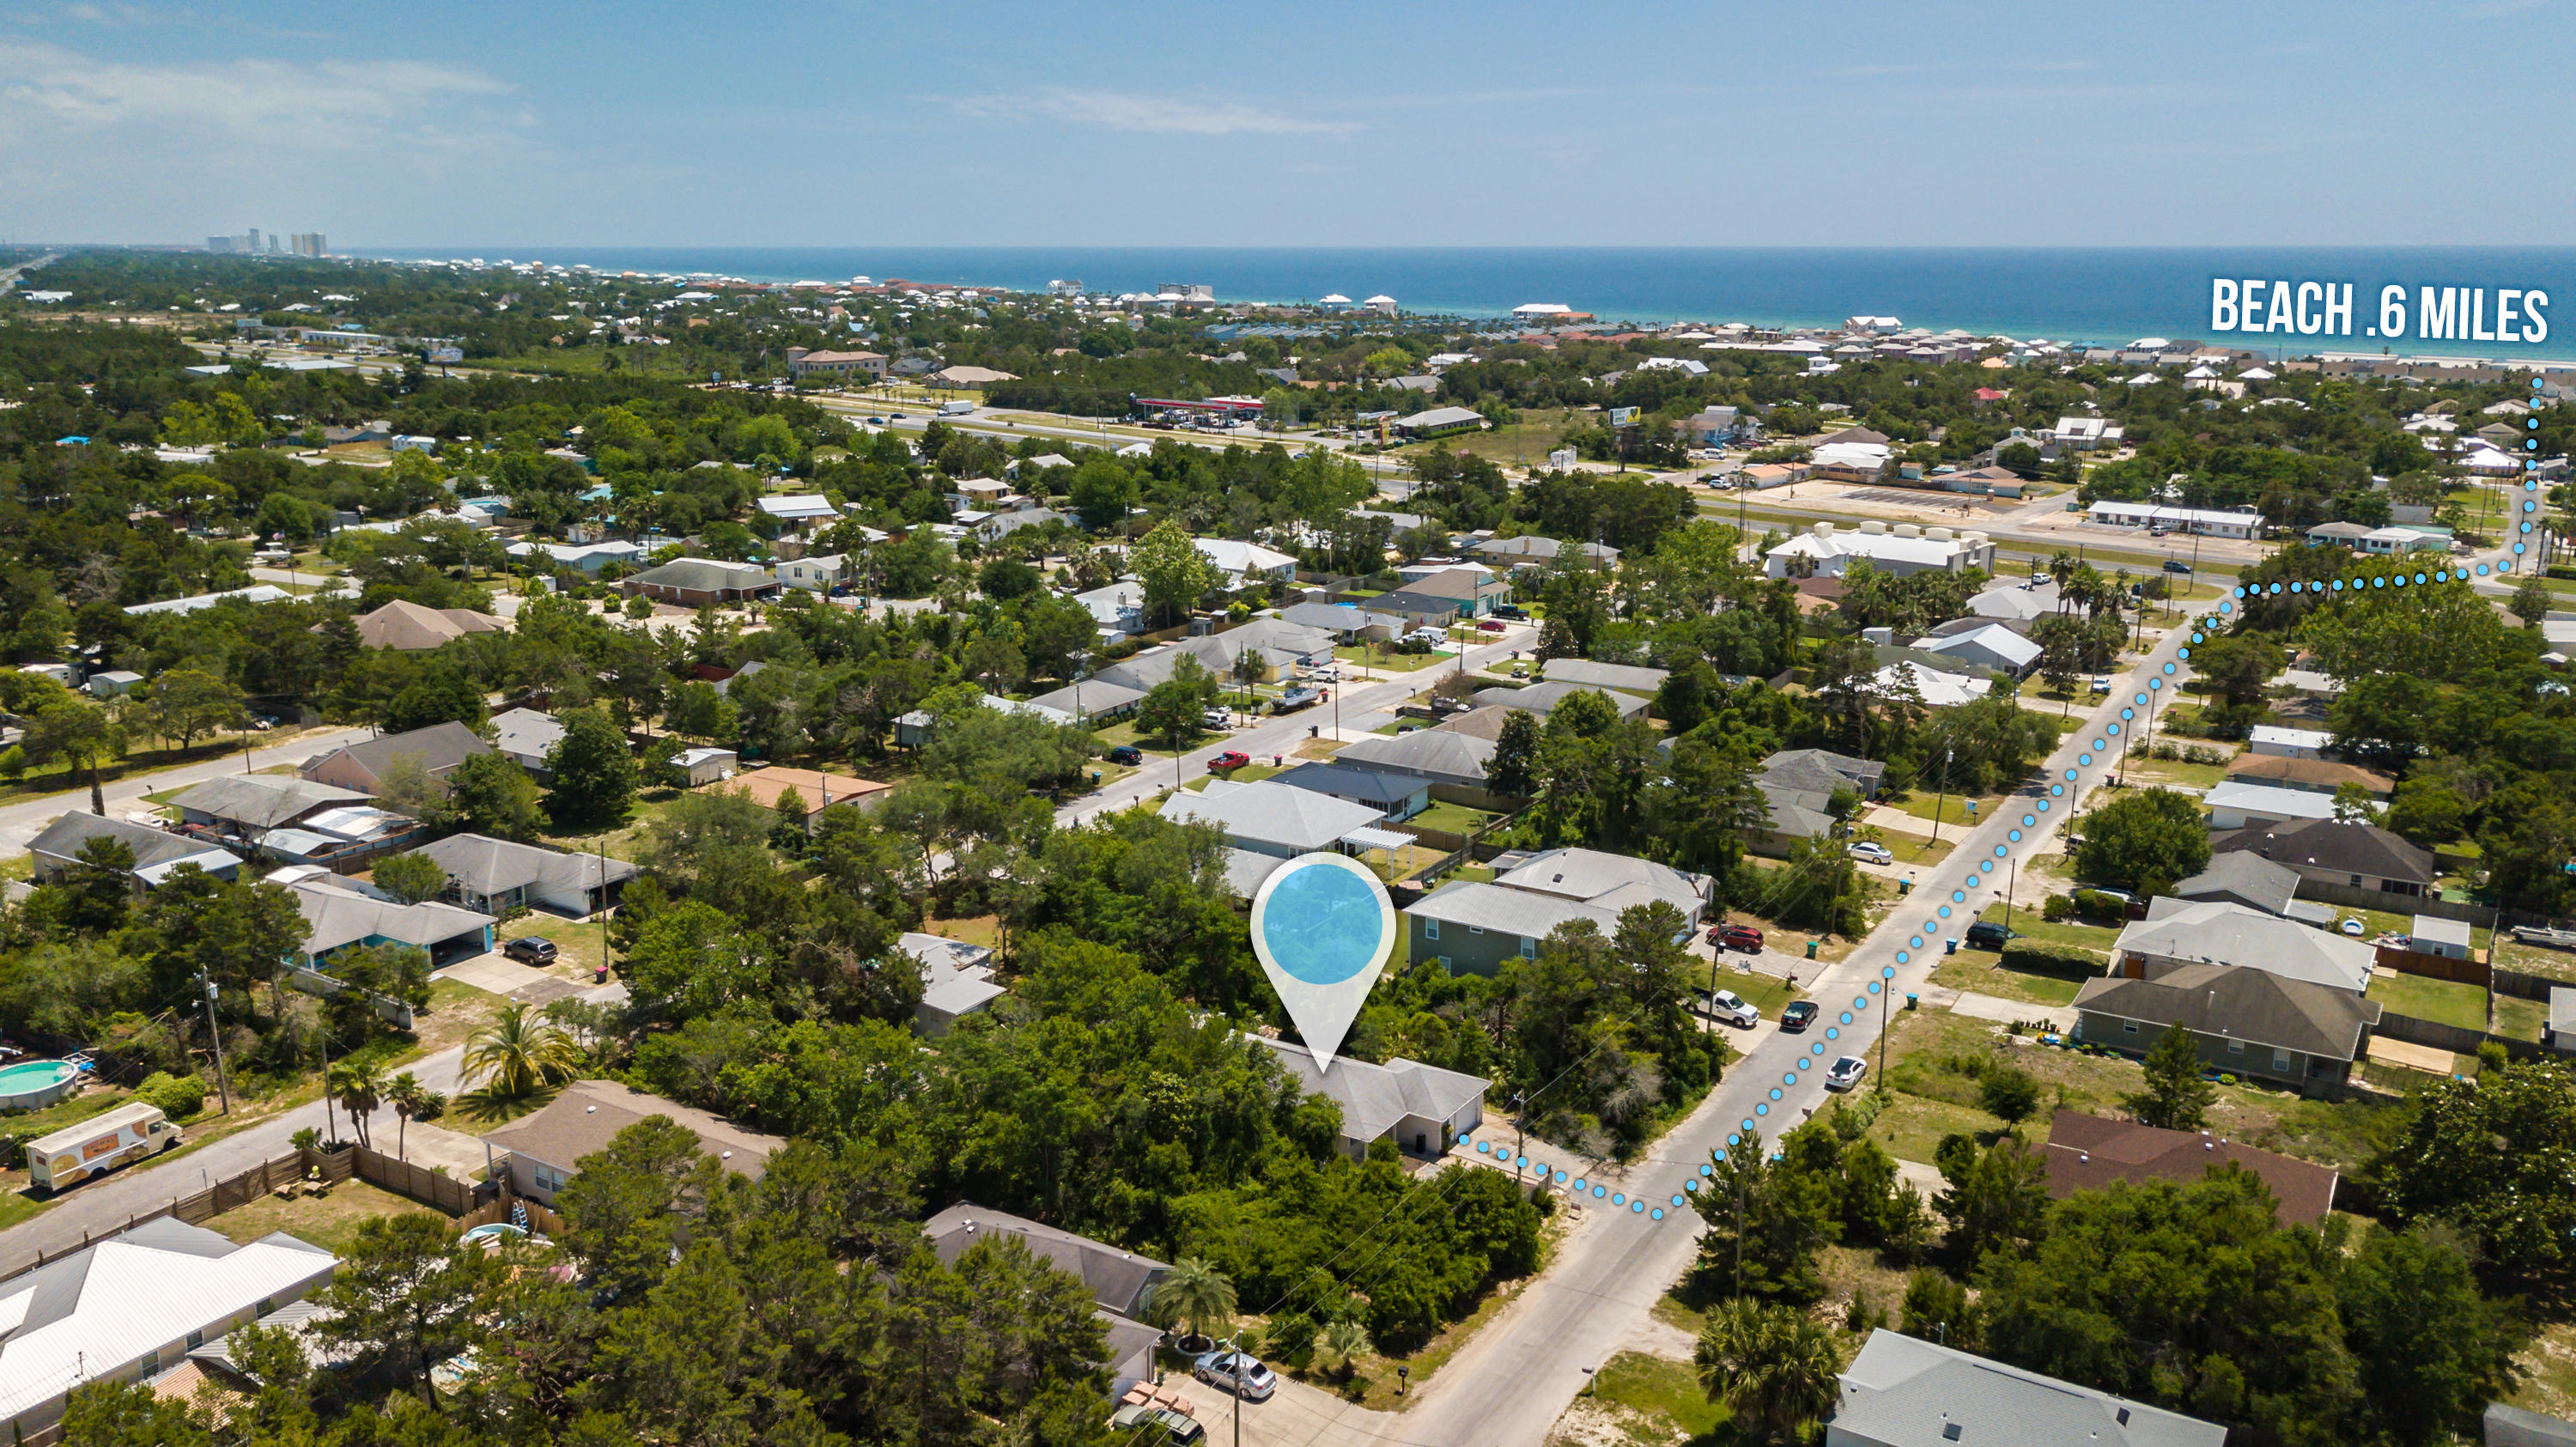 MOTIVATED SELLER! Make an offer!! This 3BD/2.5BA home is located in the prime location of Inlet Beach Heights. This is a great opportunity to live within walking distance of Lake Powell, an 800 acre coastal dune lake that outfalls into the Gulf of Mexico and just a little over a 1/2 mile from public beach access points. This home is ideally located in a growing area of Inlet Beach within minutes of major shopping malls, exclusive restaurants along Scenic Hwy 30A, live entertainment and Camp Helen State Park. This home has so much potential. With extensive TLC, it will make for a great primary residence or investment rental property.